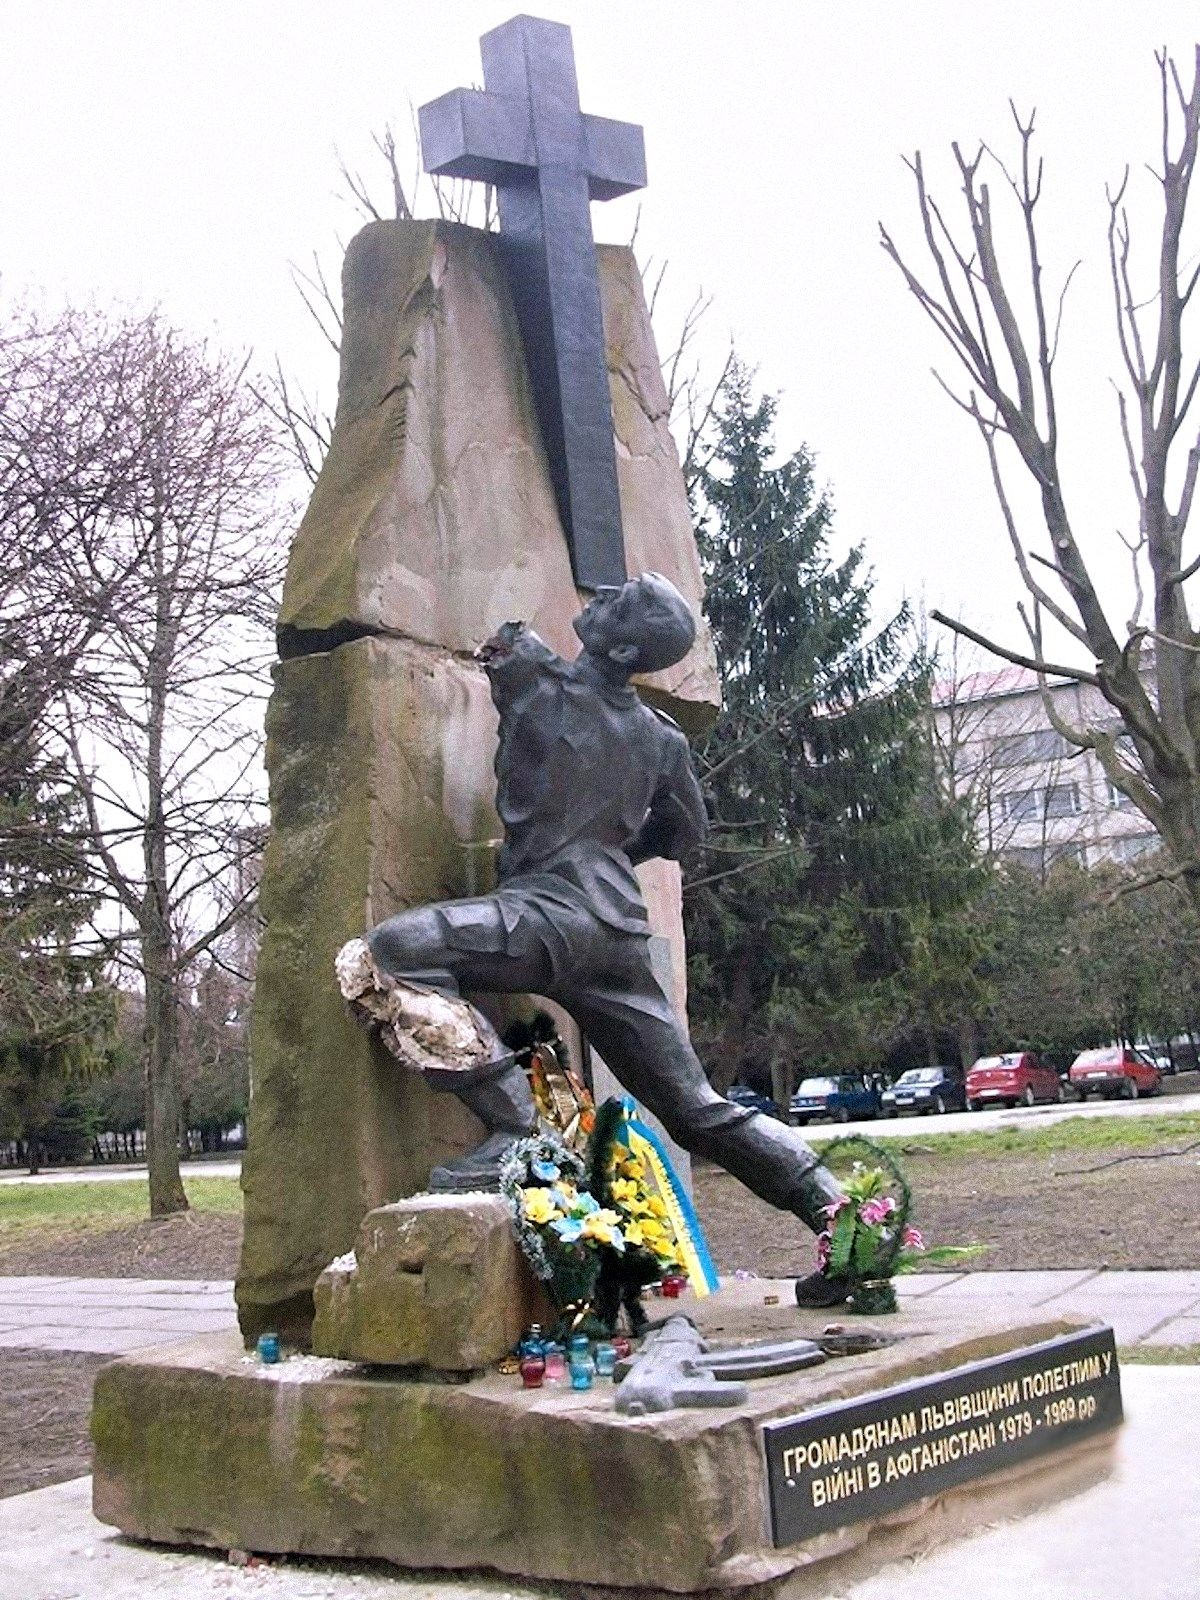 00 Memorial to Afgansy. Lvov THE UKRAINE. 06.04.15